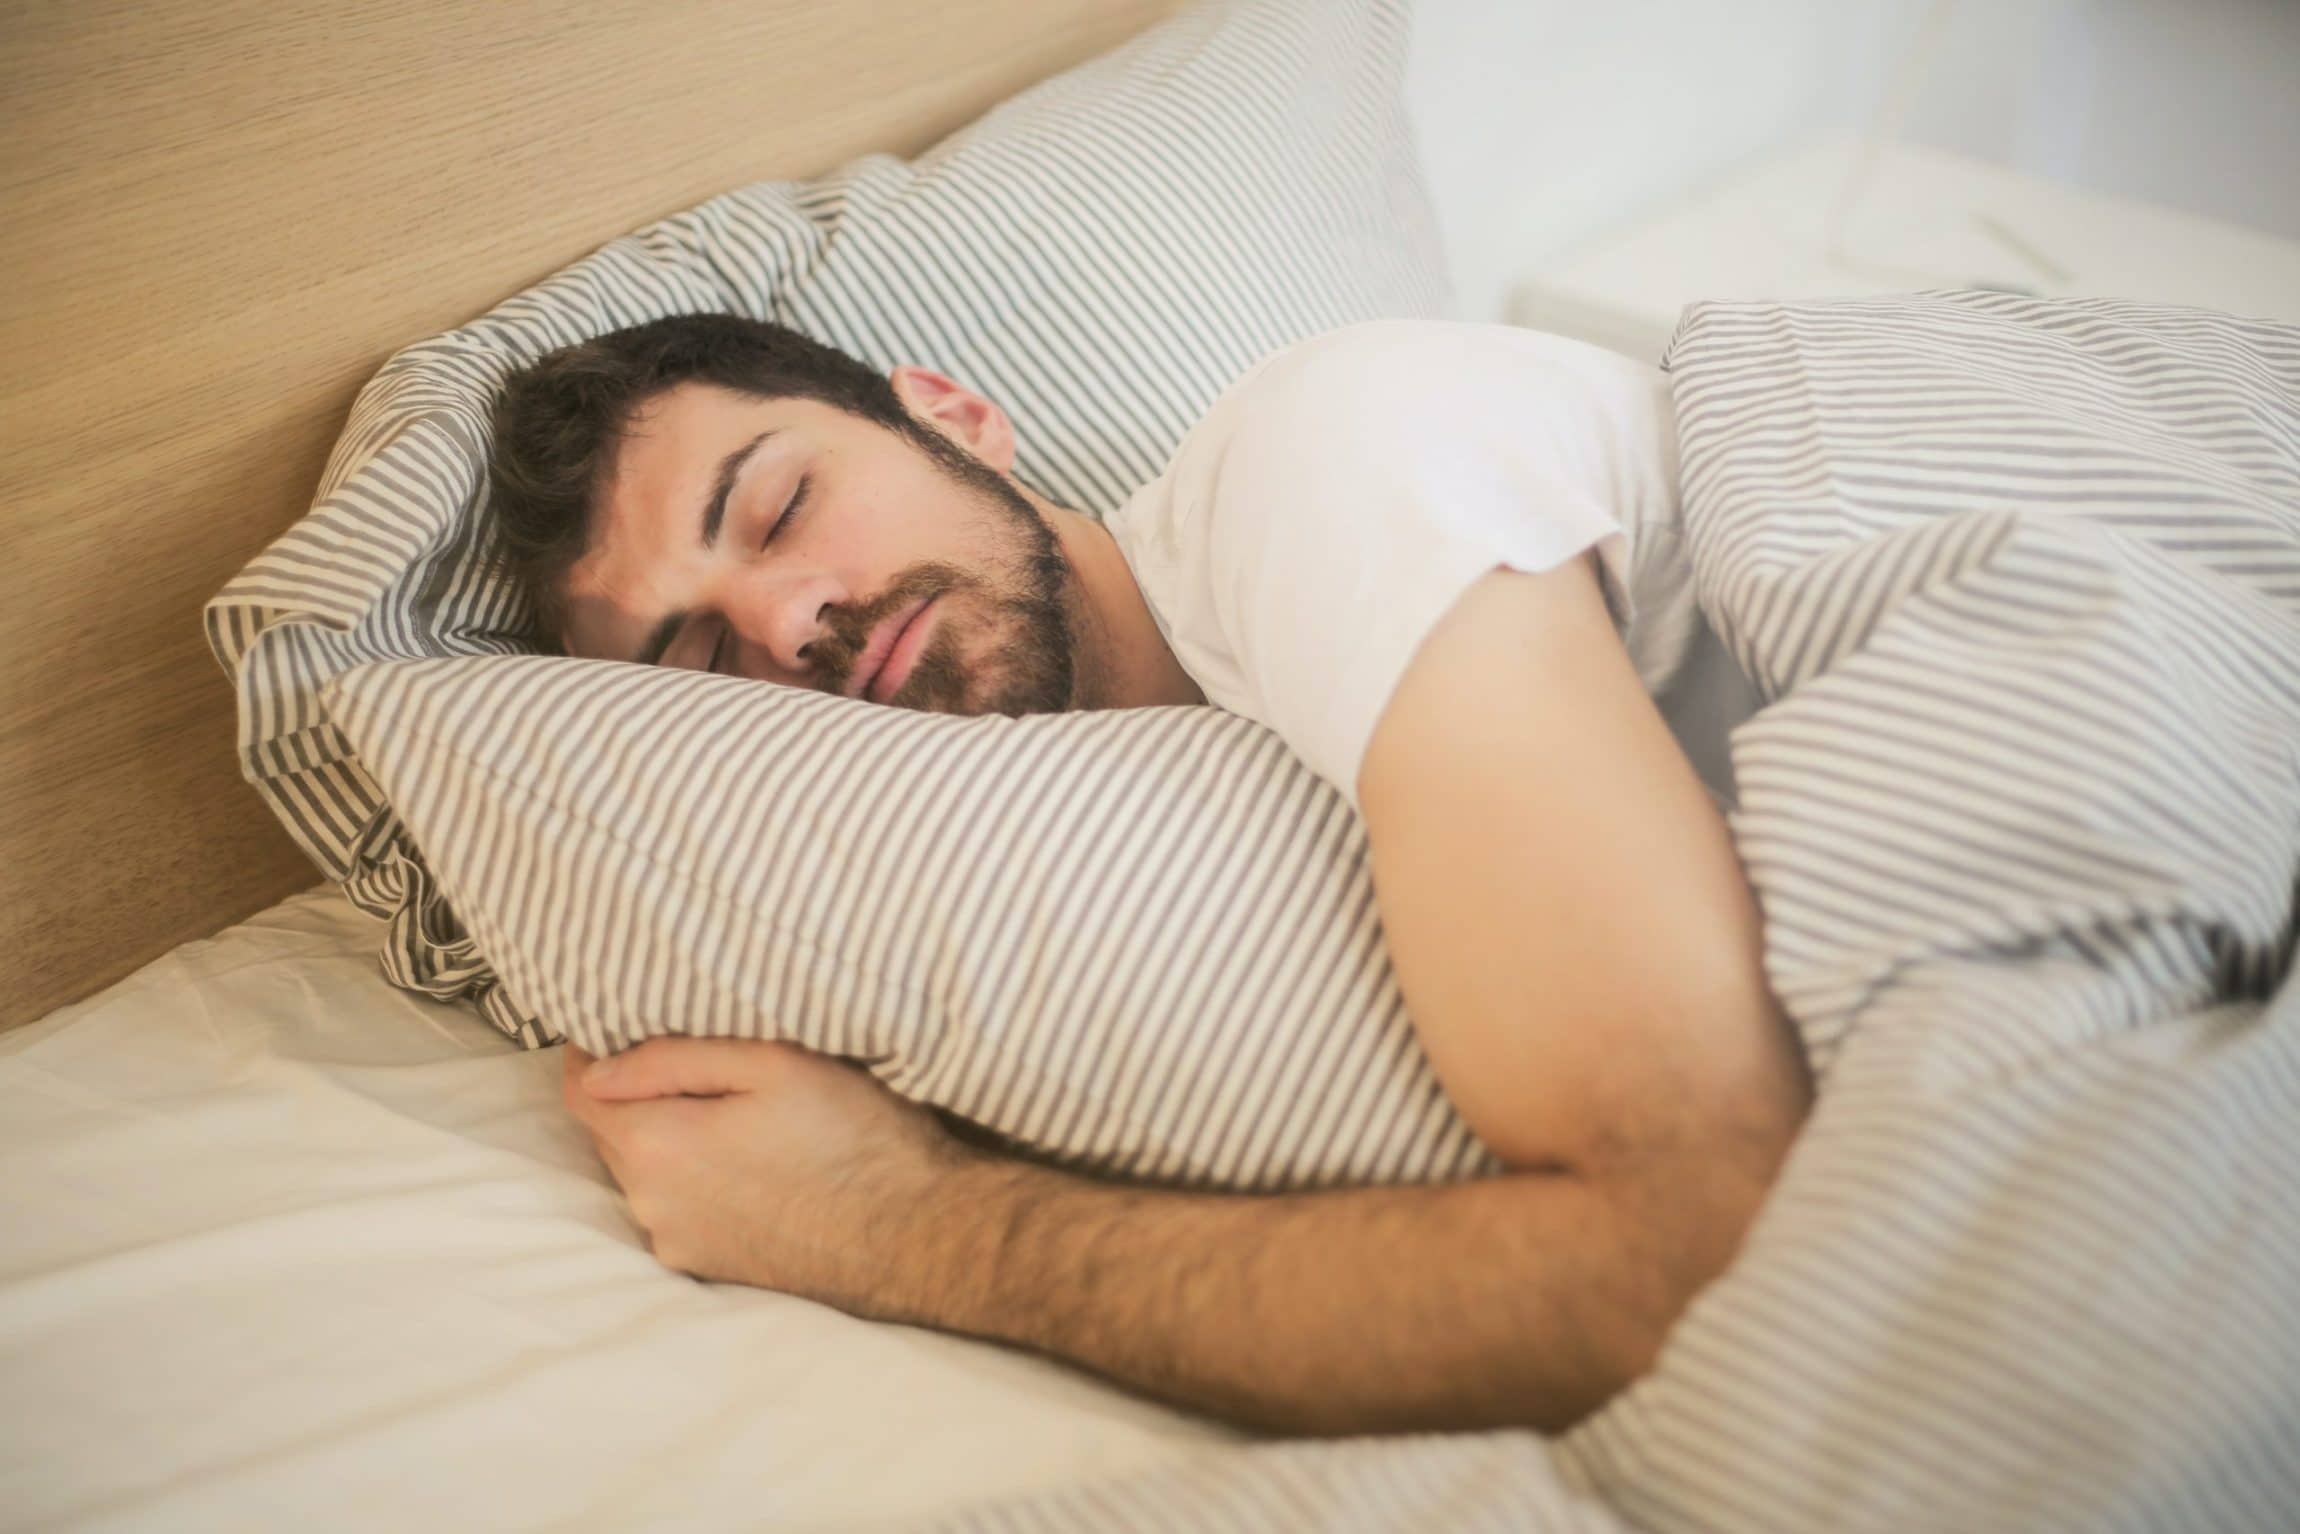 Can You Become Dependent On Sleeping Pills?